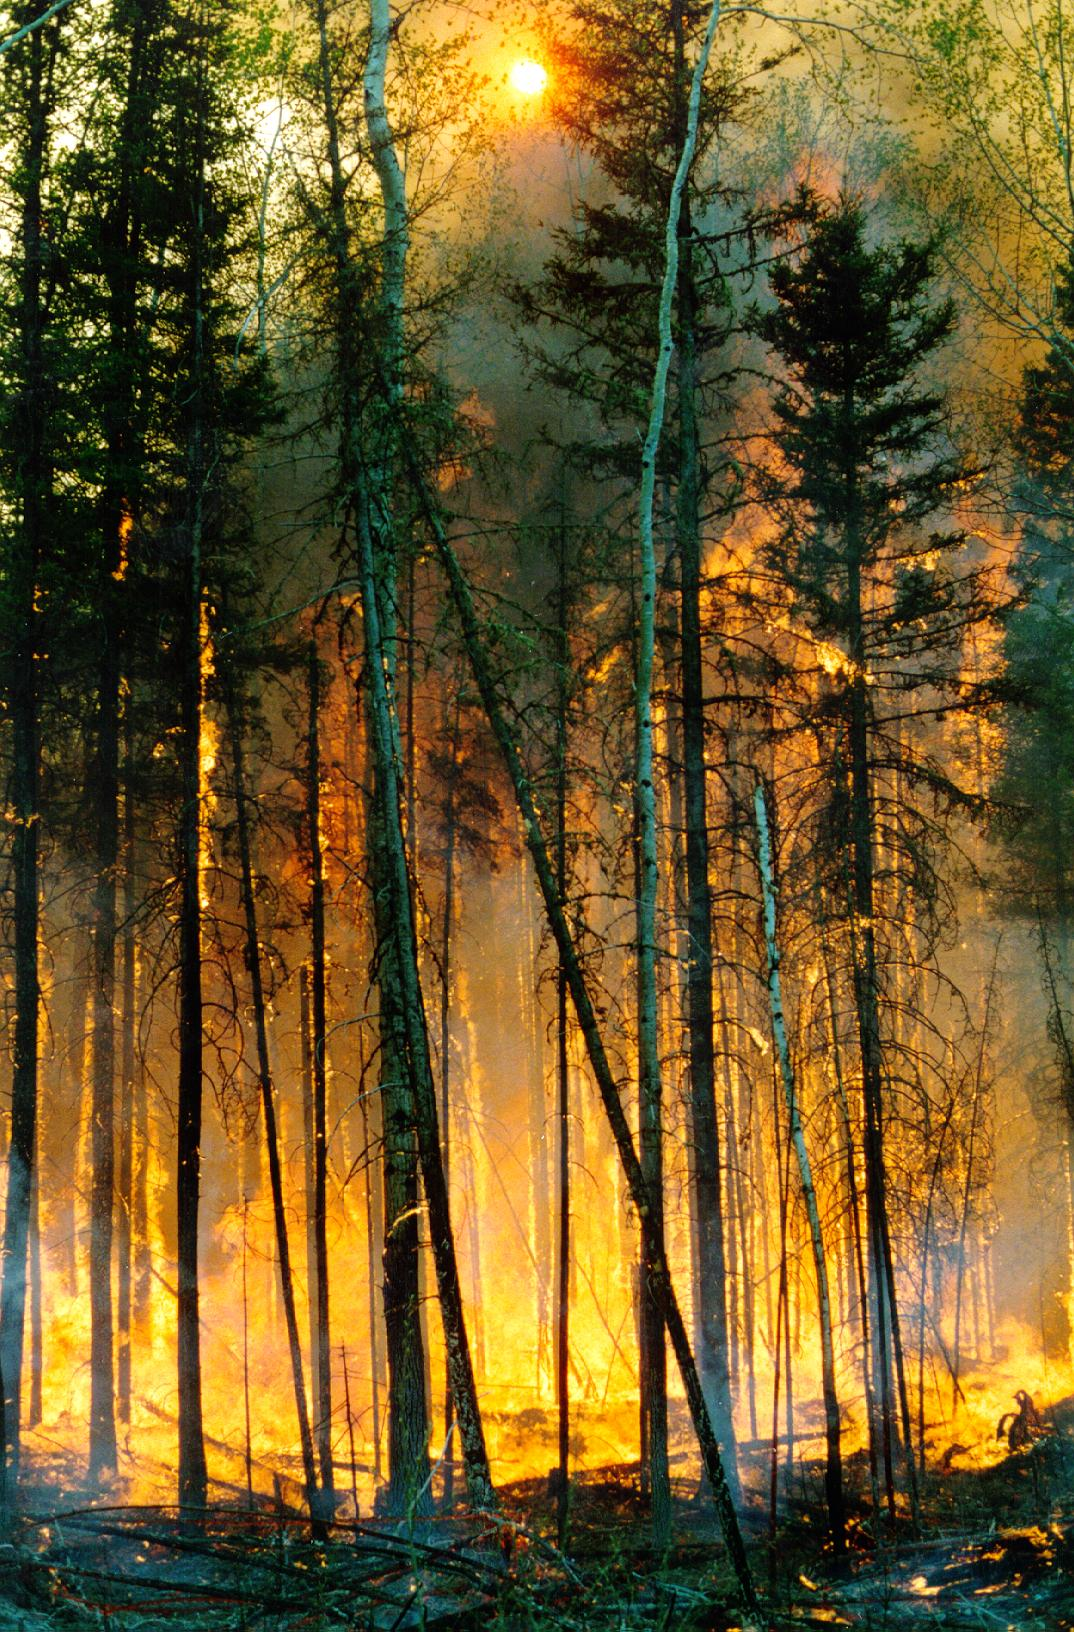 Wildfire in a boreal forest stand